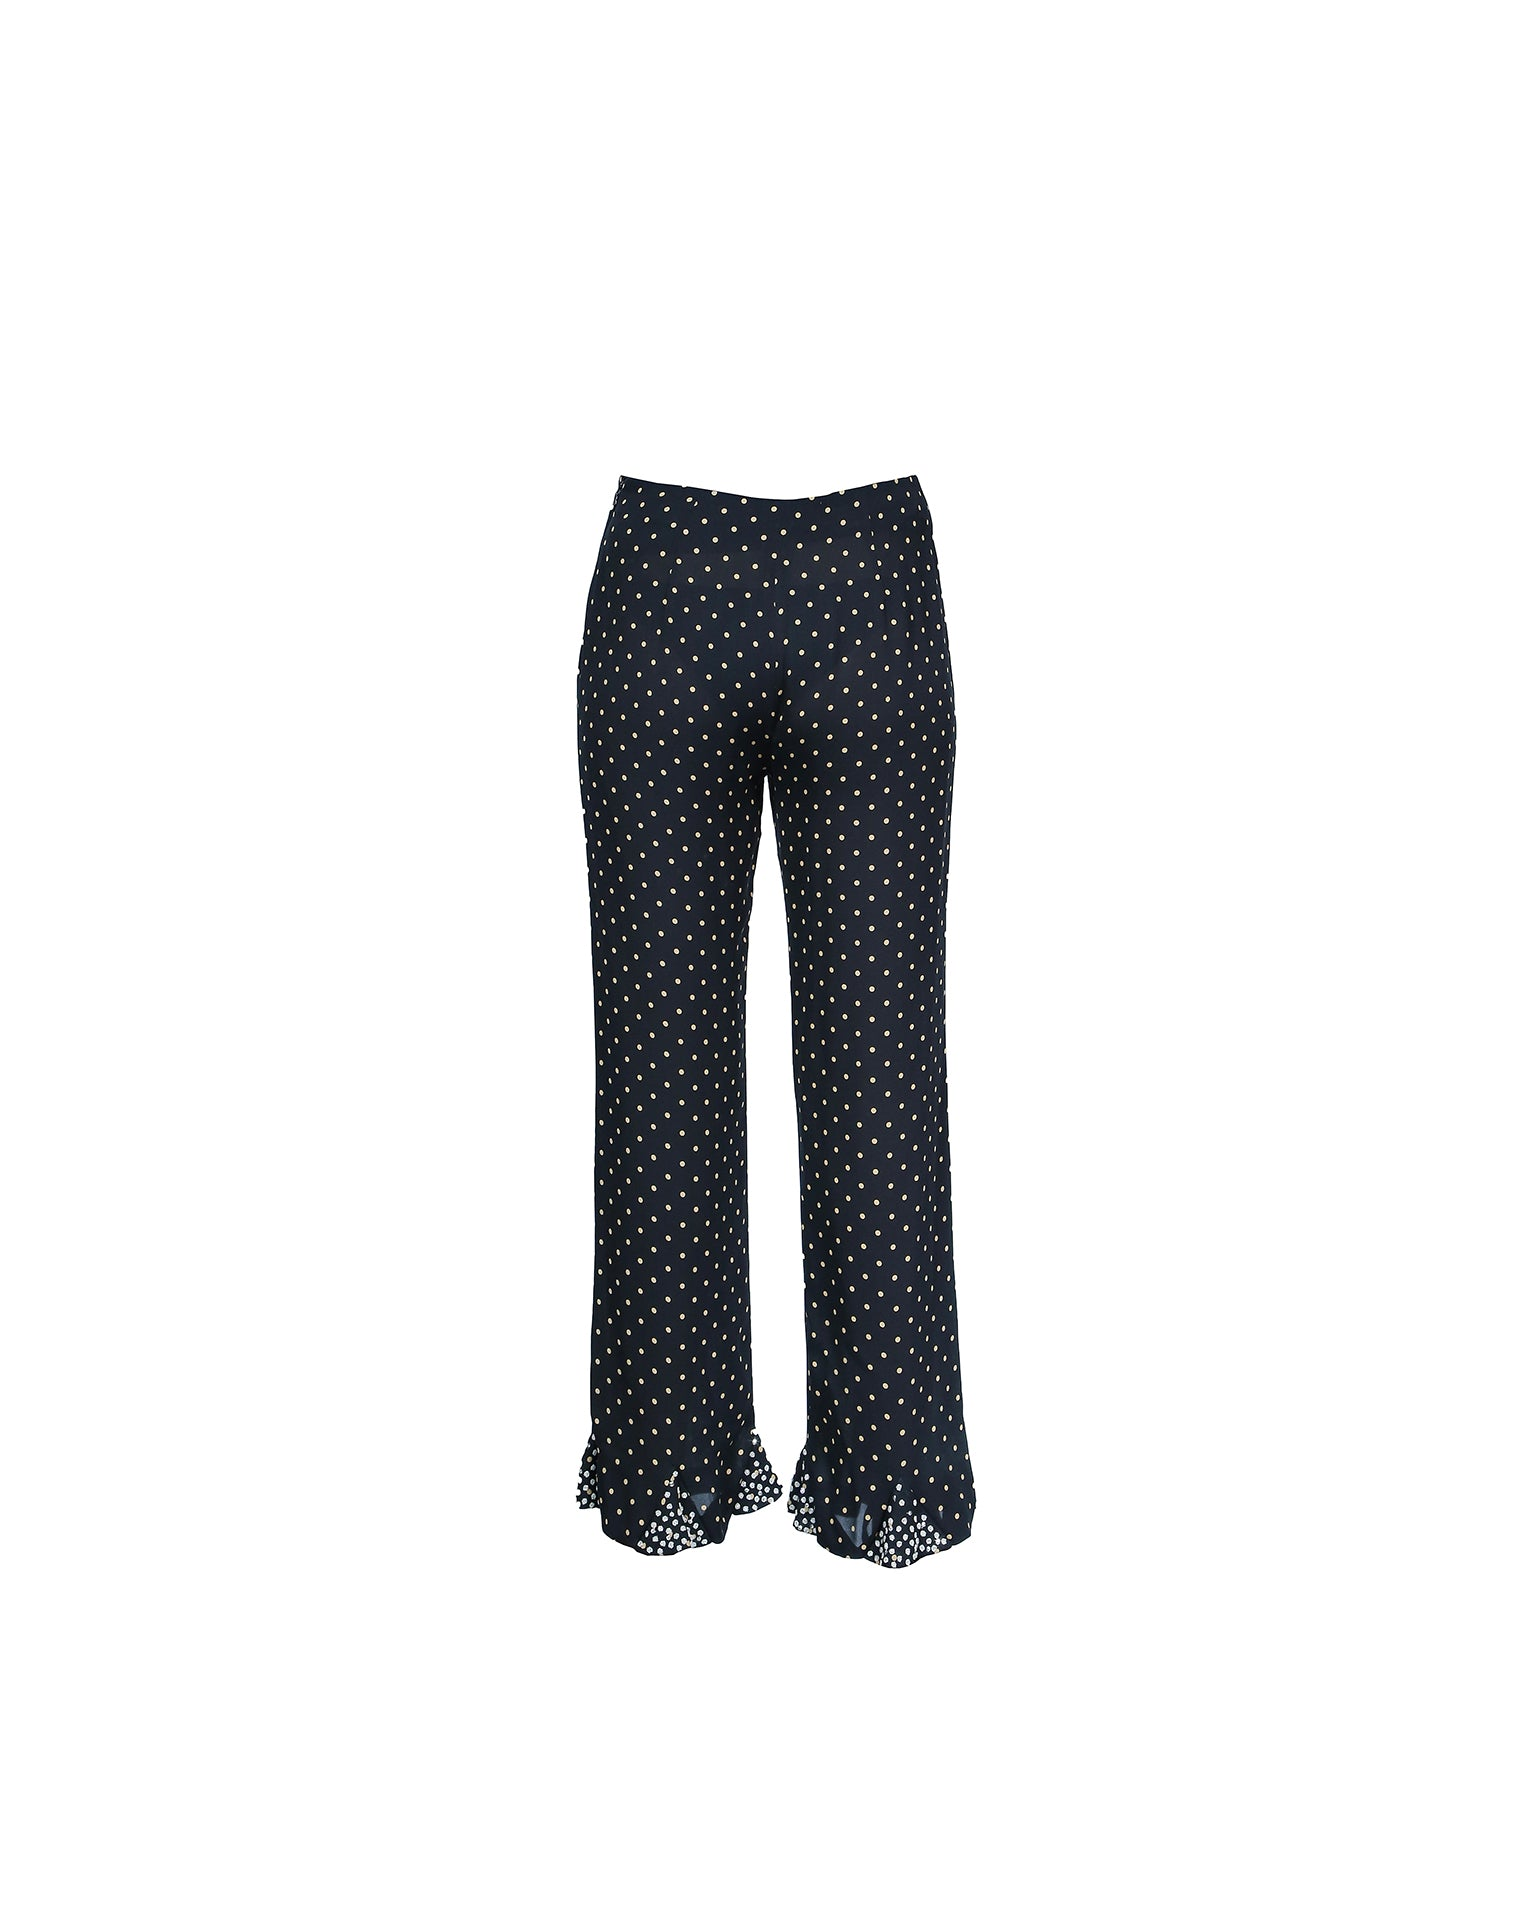 Valentino Black Silk Trousers With Golden Polka Dots and Beaded Details Size 38 (EU)